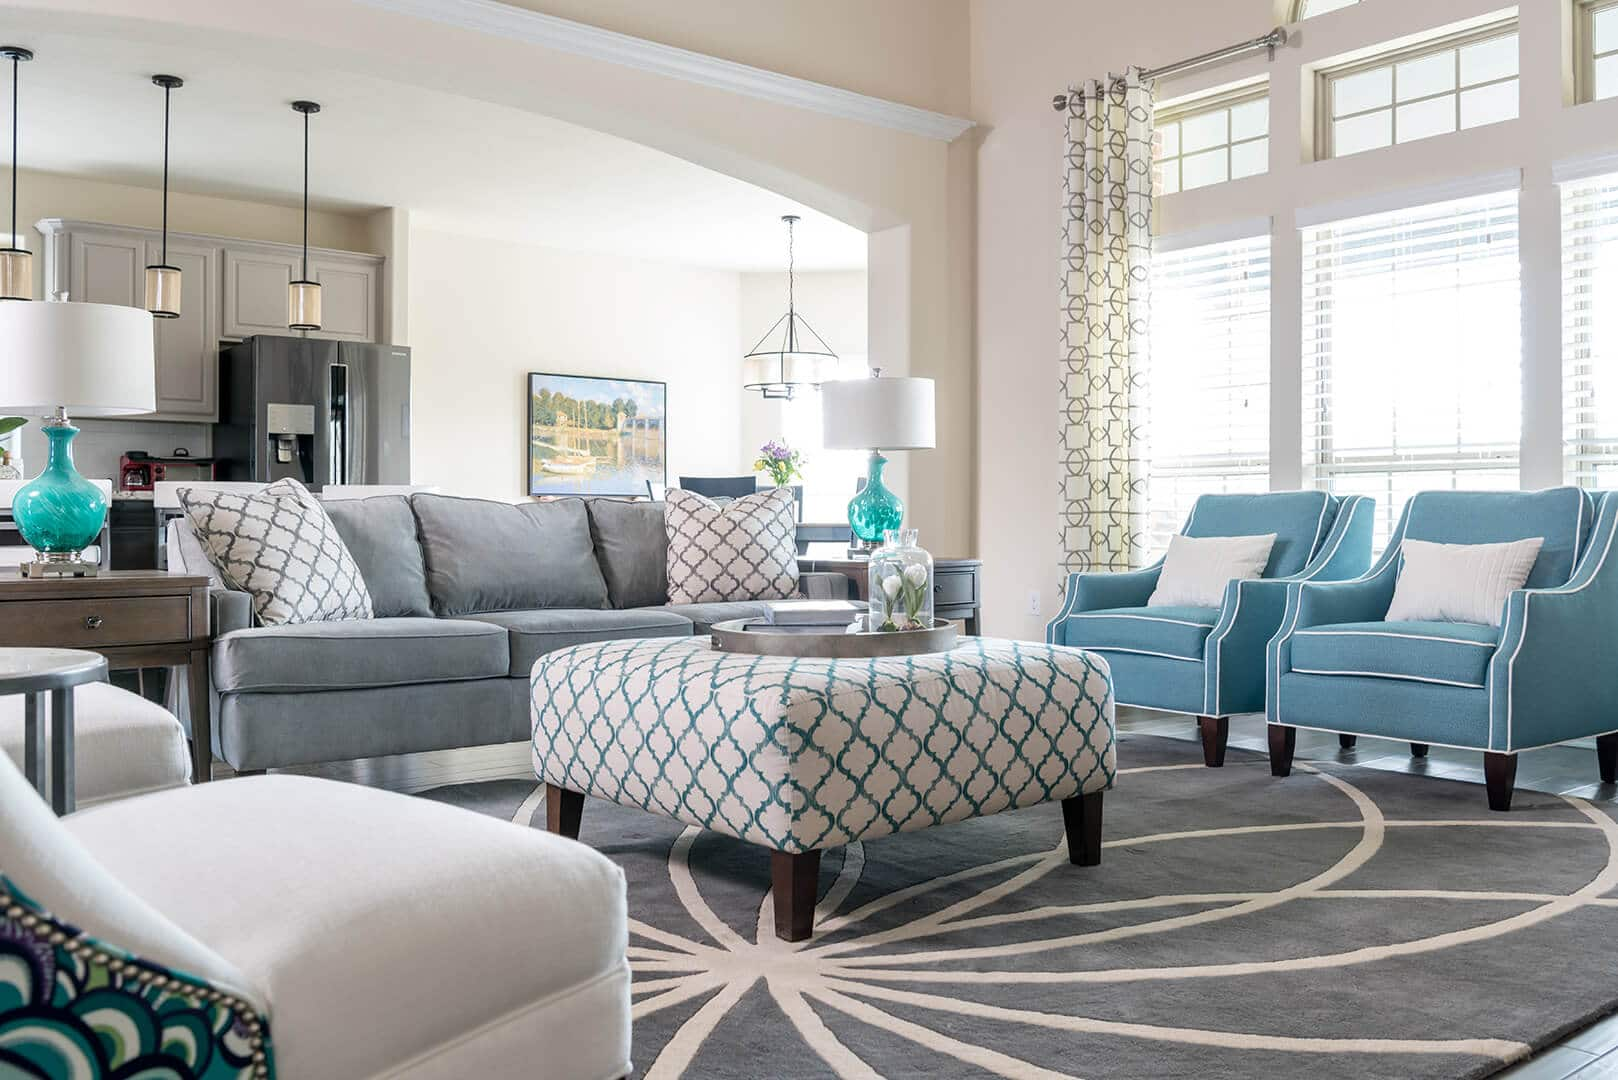 Blue & Gray Family Room Decorating Ideas with star patterned rug by Dee Frazier Interiors Decorating Den Interiors the best Dallas Interior Designer